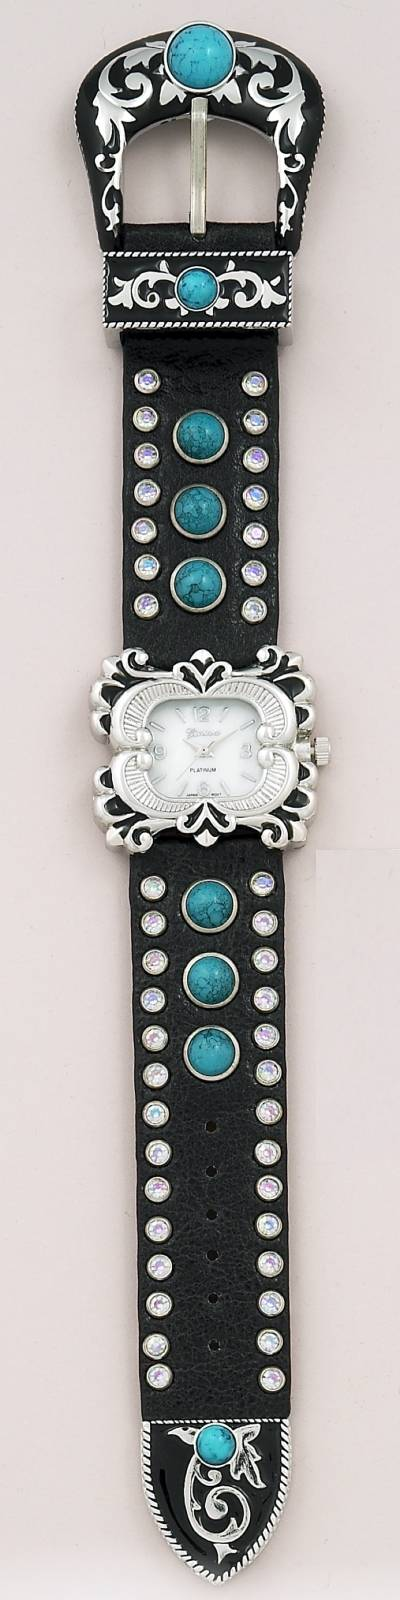 Western Style Belt Buckle Watch